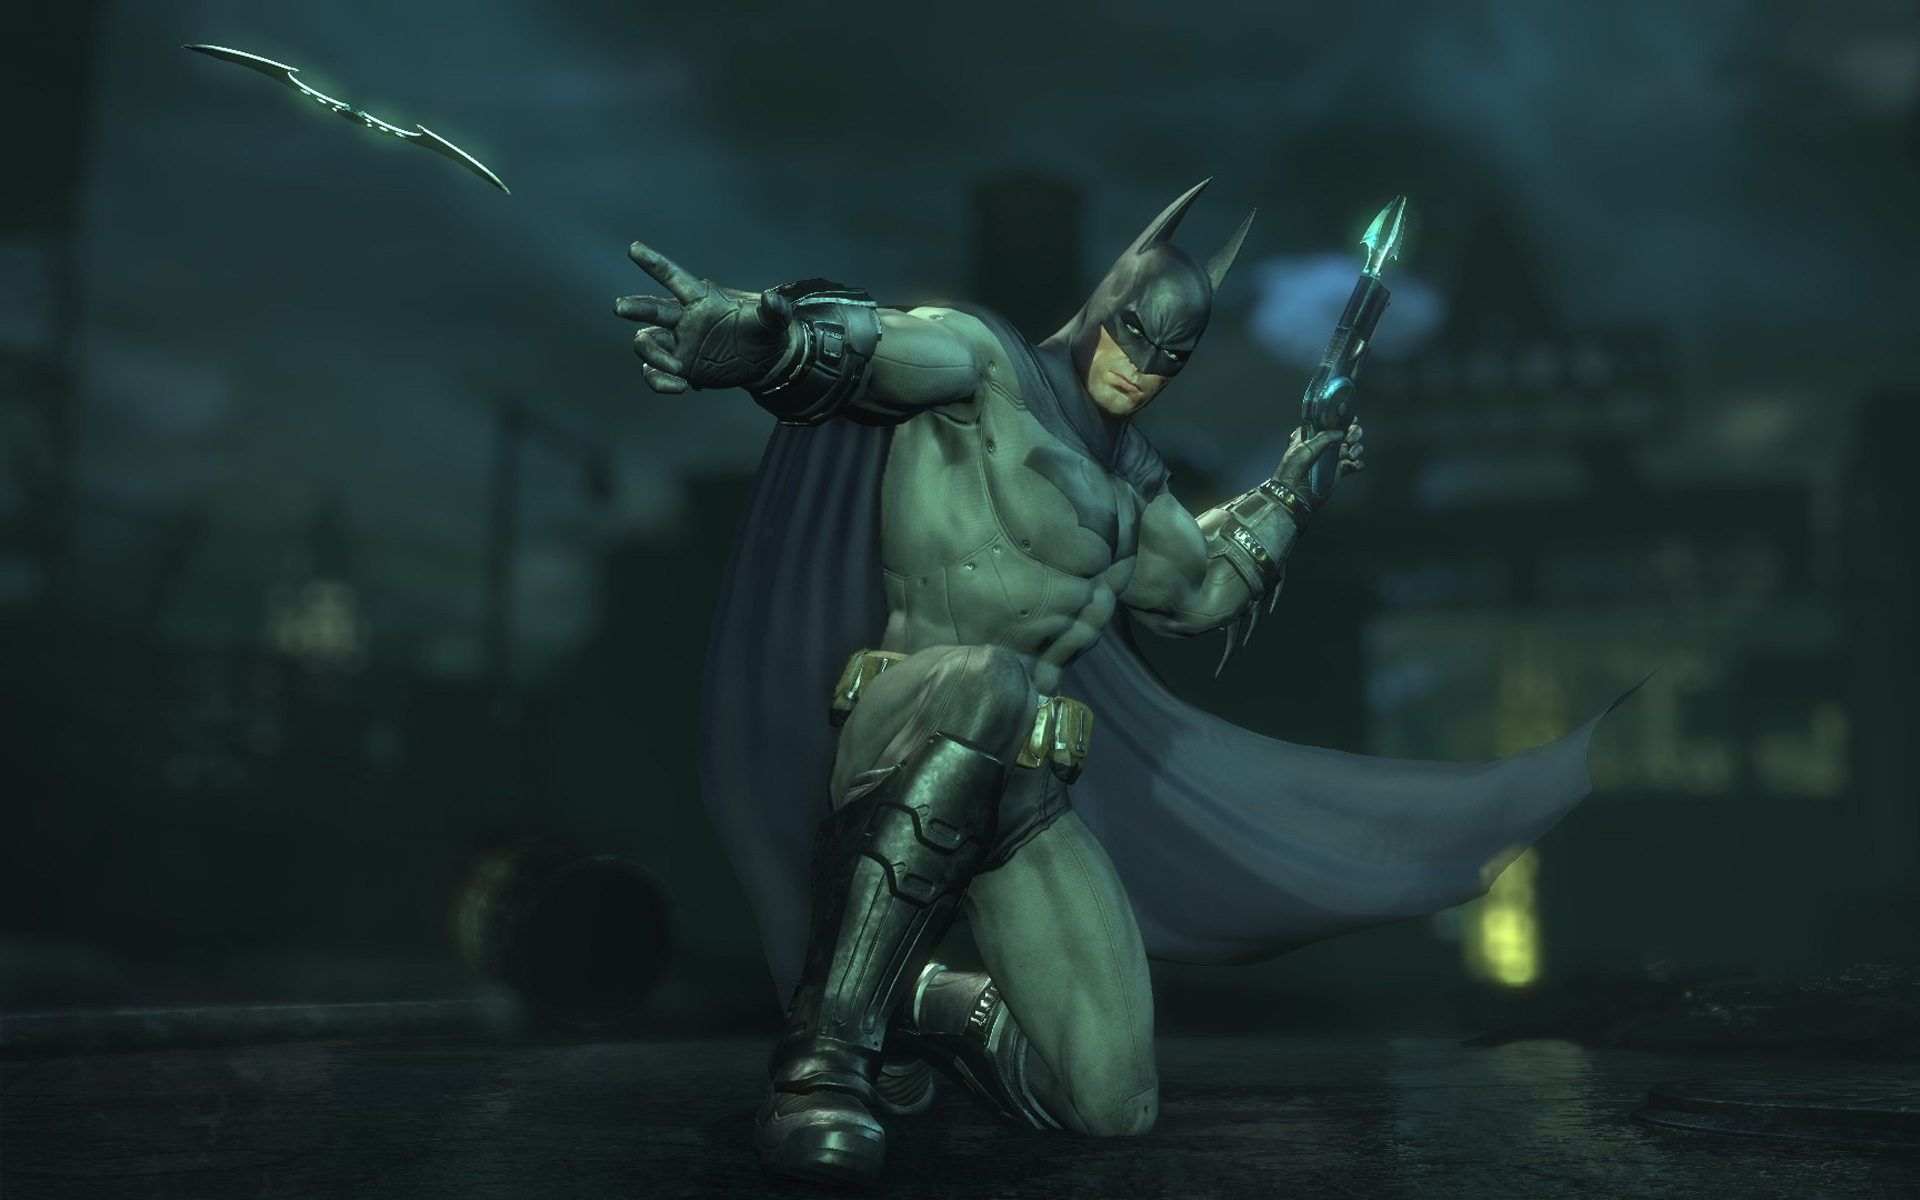 Free Batman: Arkham City Wallpaper in 1920x1200